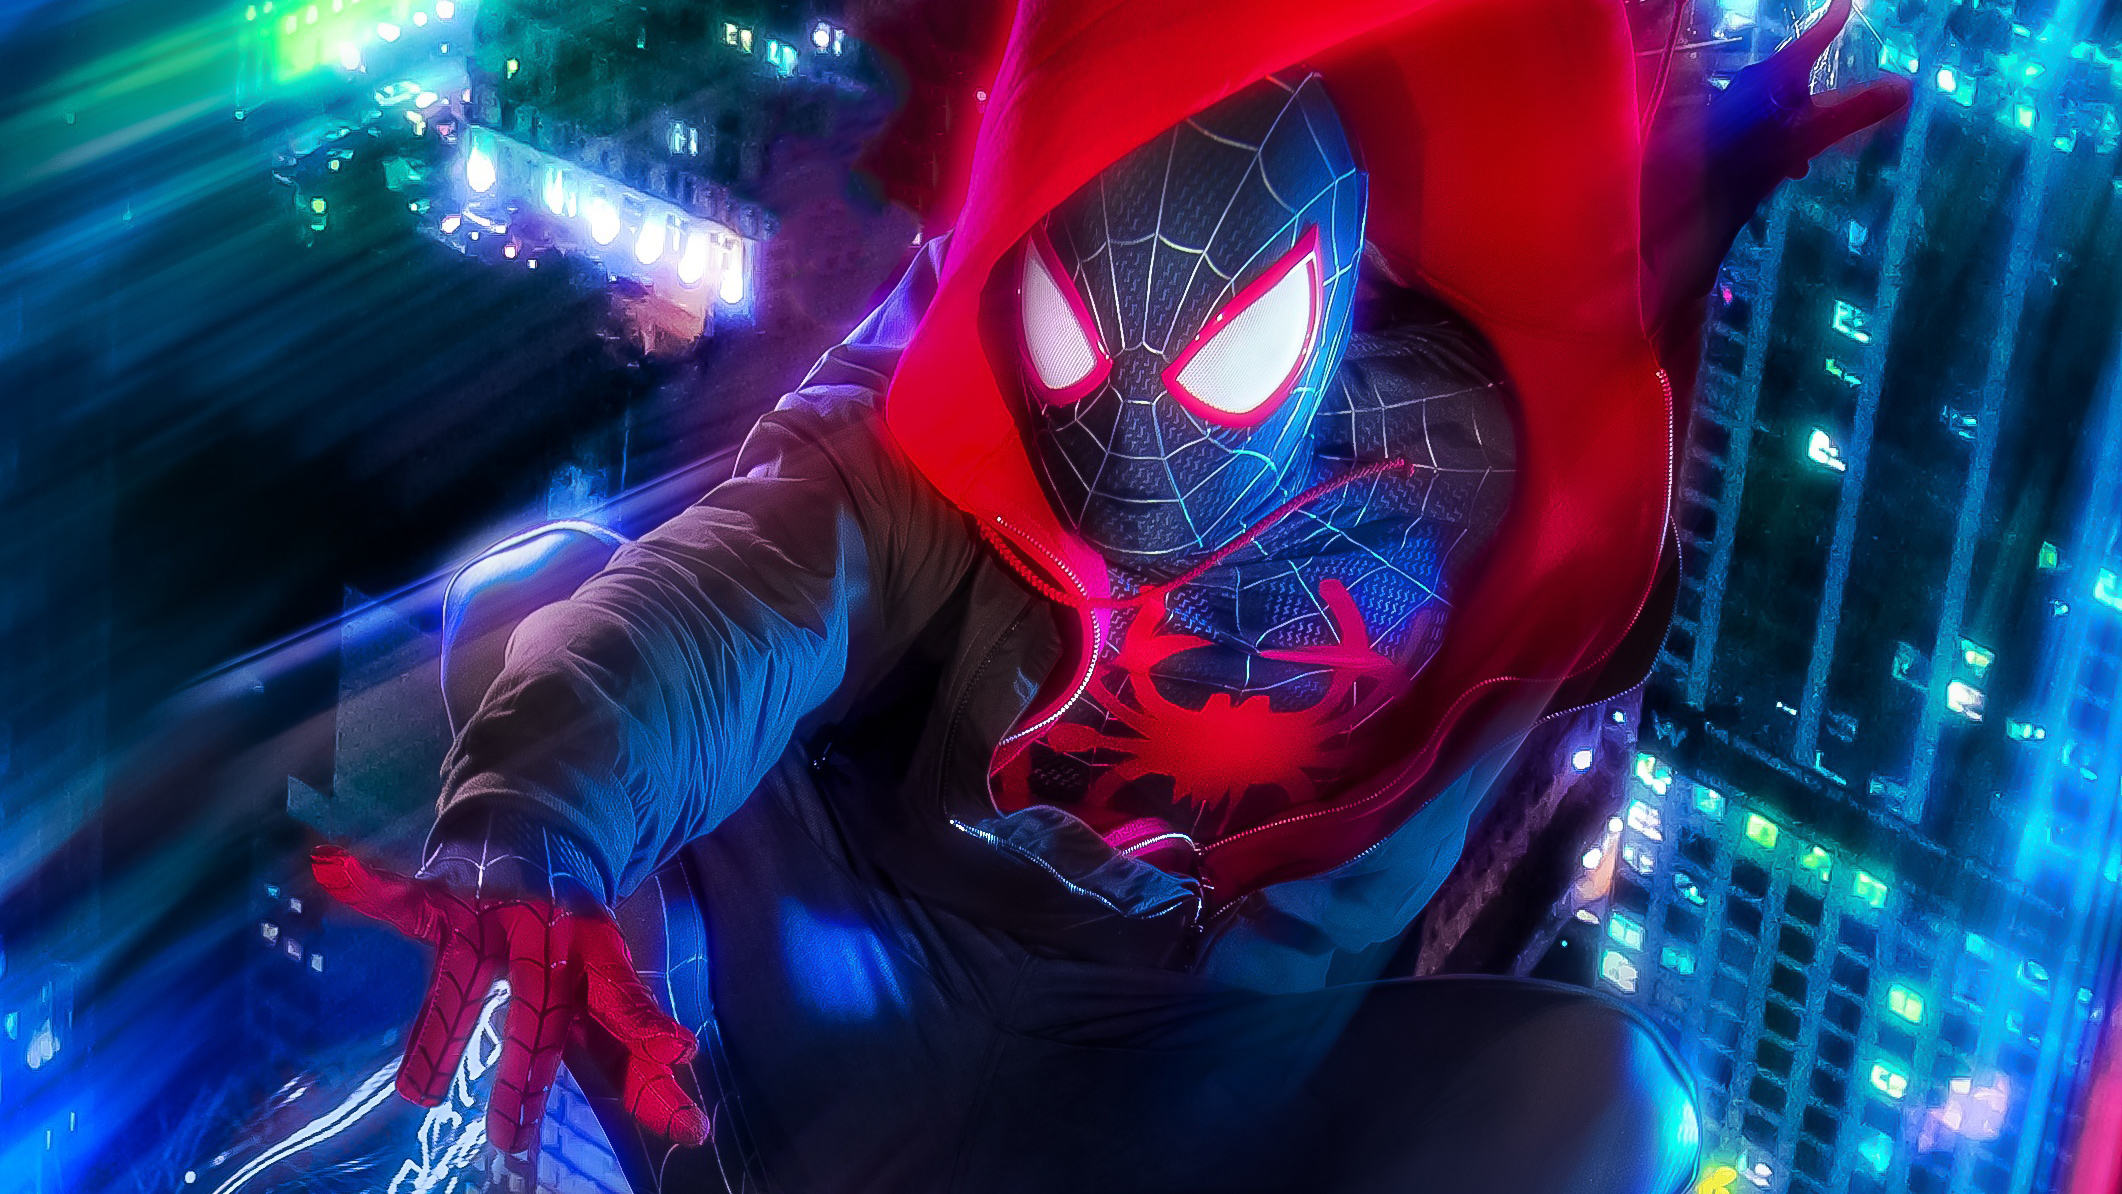 Spider Man Hd Wallpaper Background Image 2122x1194 Id 977079